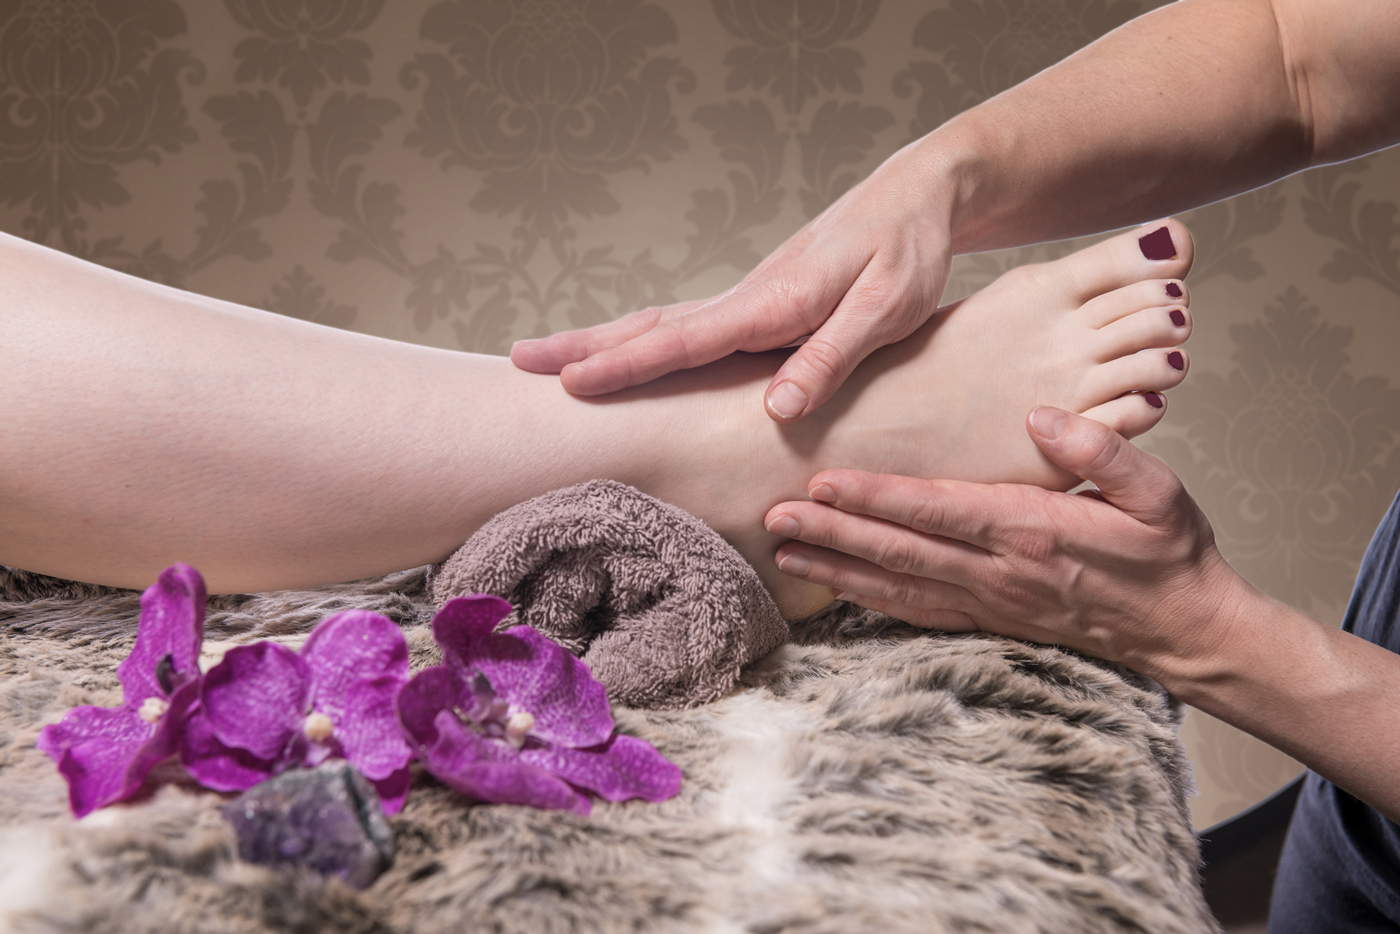 Reflexology - A natural therapy performed on the feet using massage with varying degrees of pressure to stimulate the movement of energy in the reflex zones